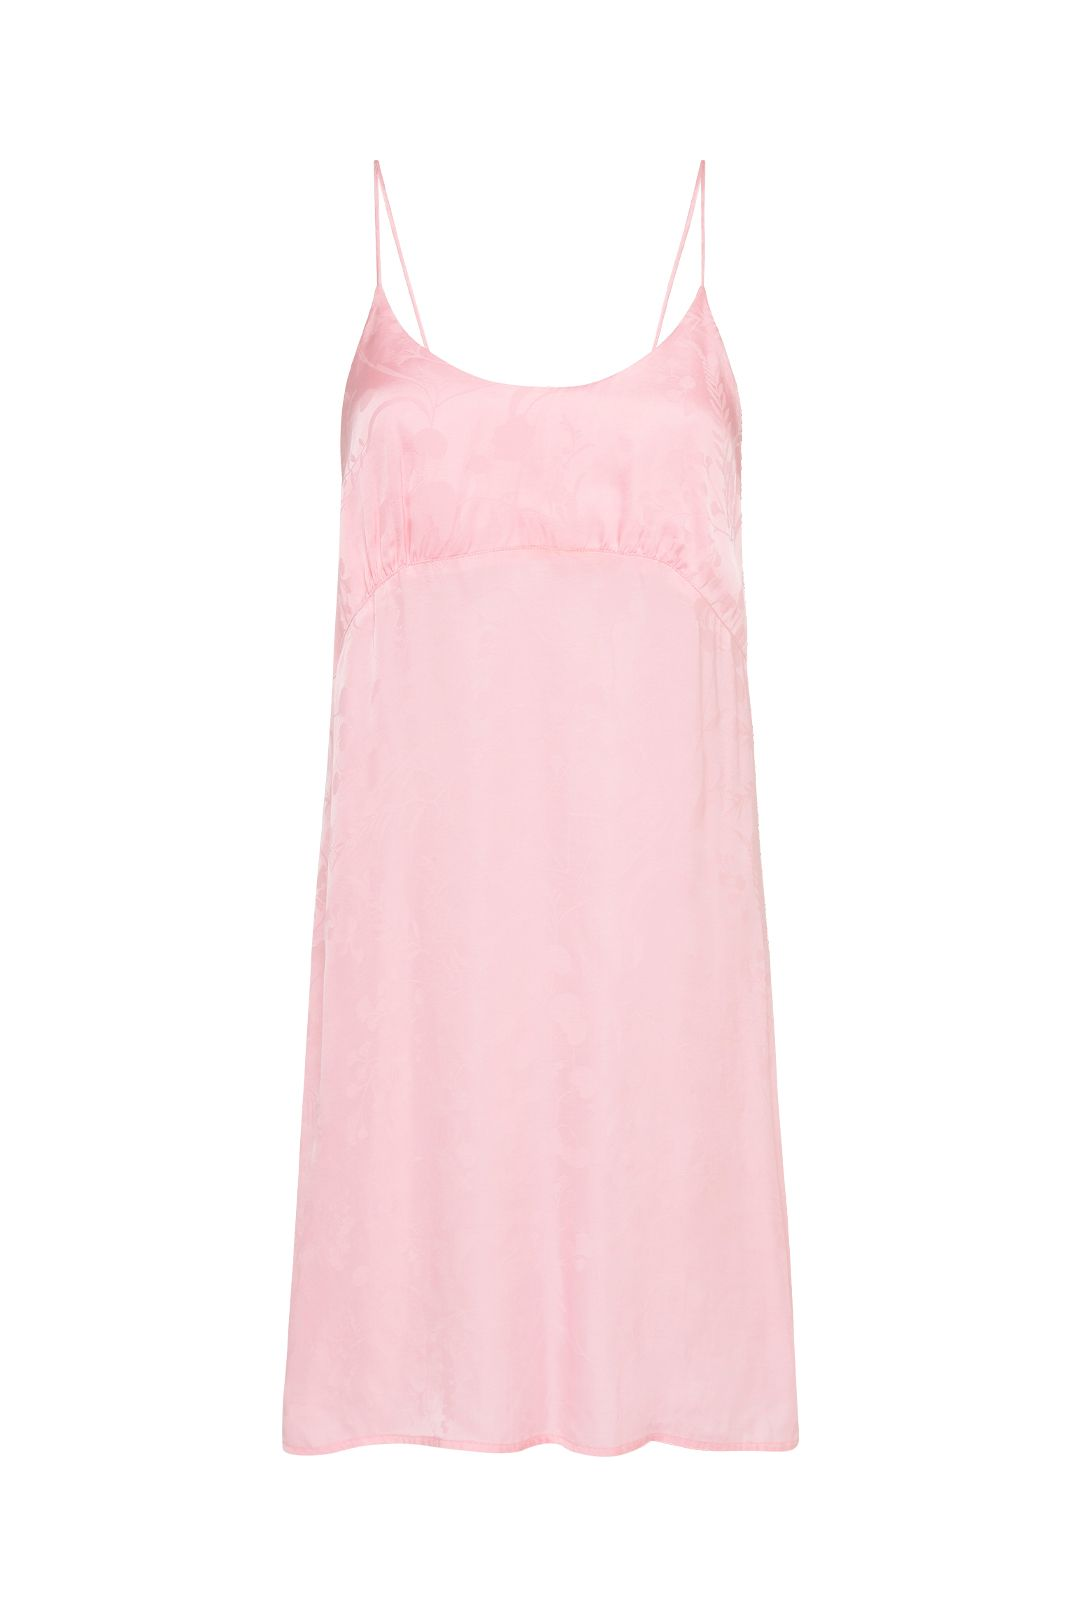 Spell Verona Mini Slip Dress 90s Pink Floral